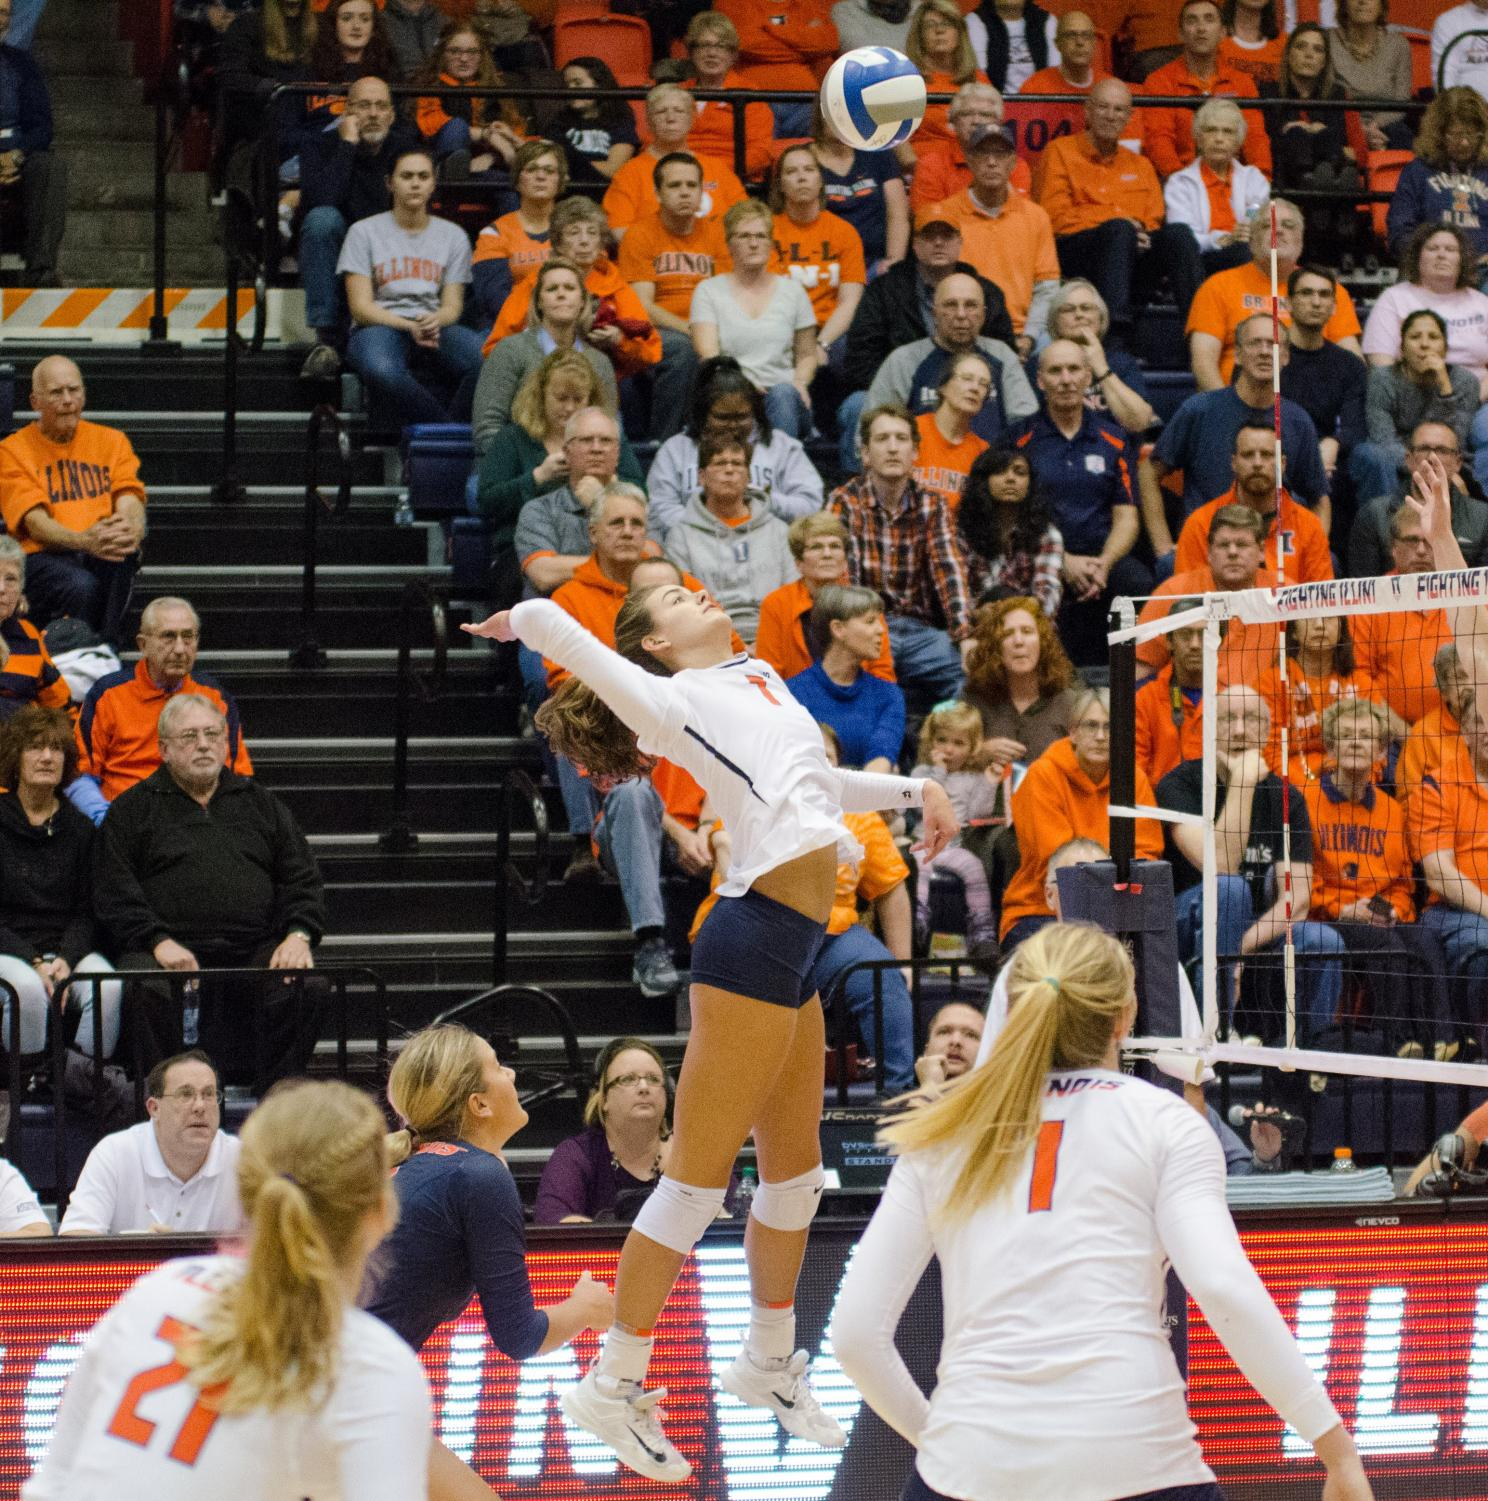 Outside hitter Jacqueline Quade prepares to spike the ball in Illinois' game against Wisconsin on Nov. 17.